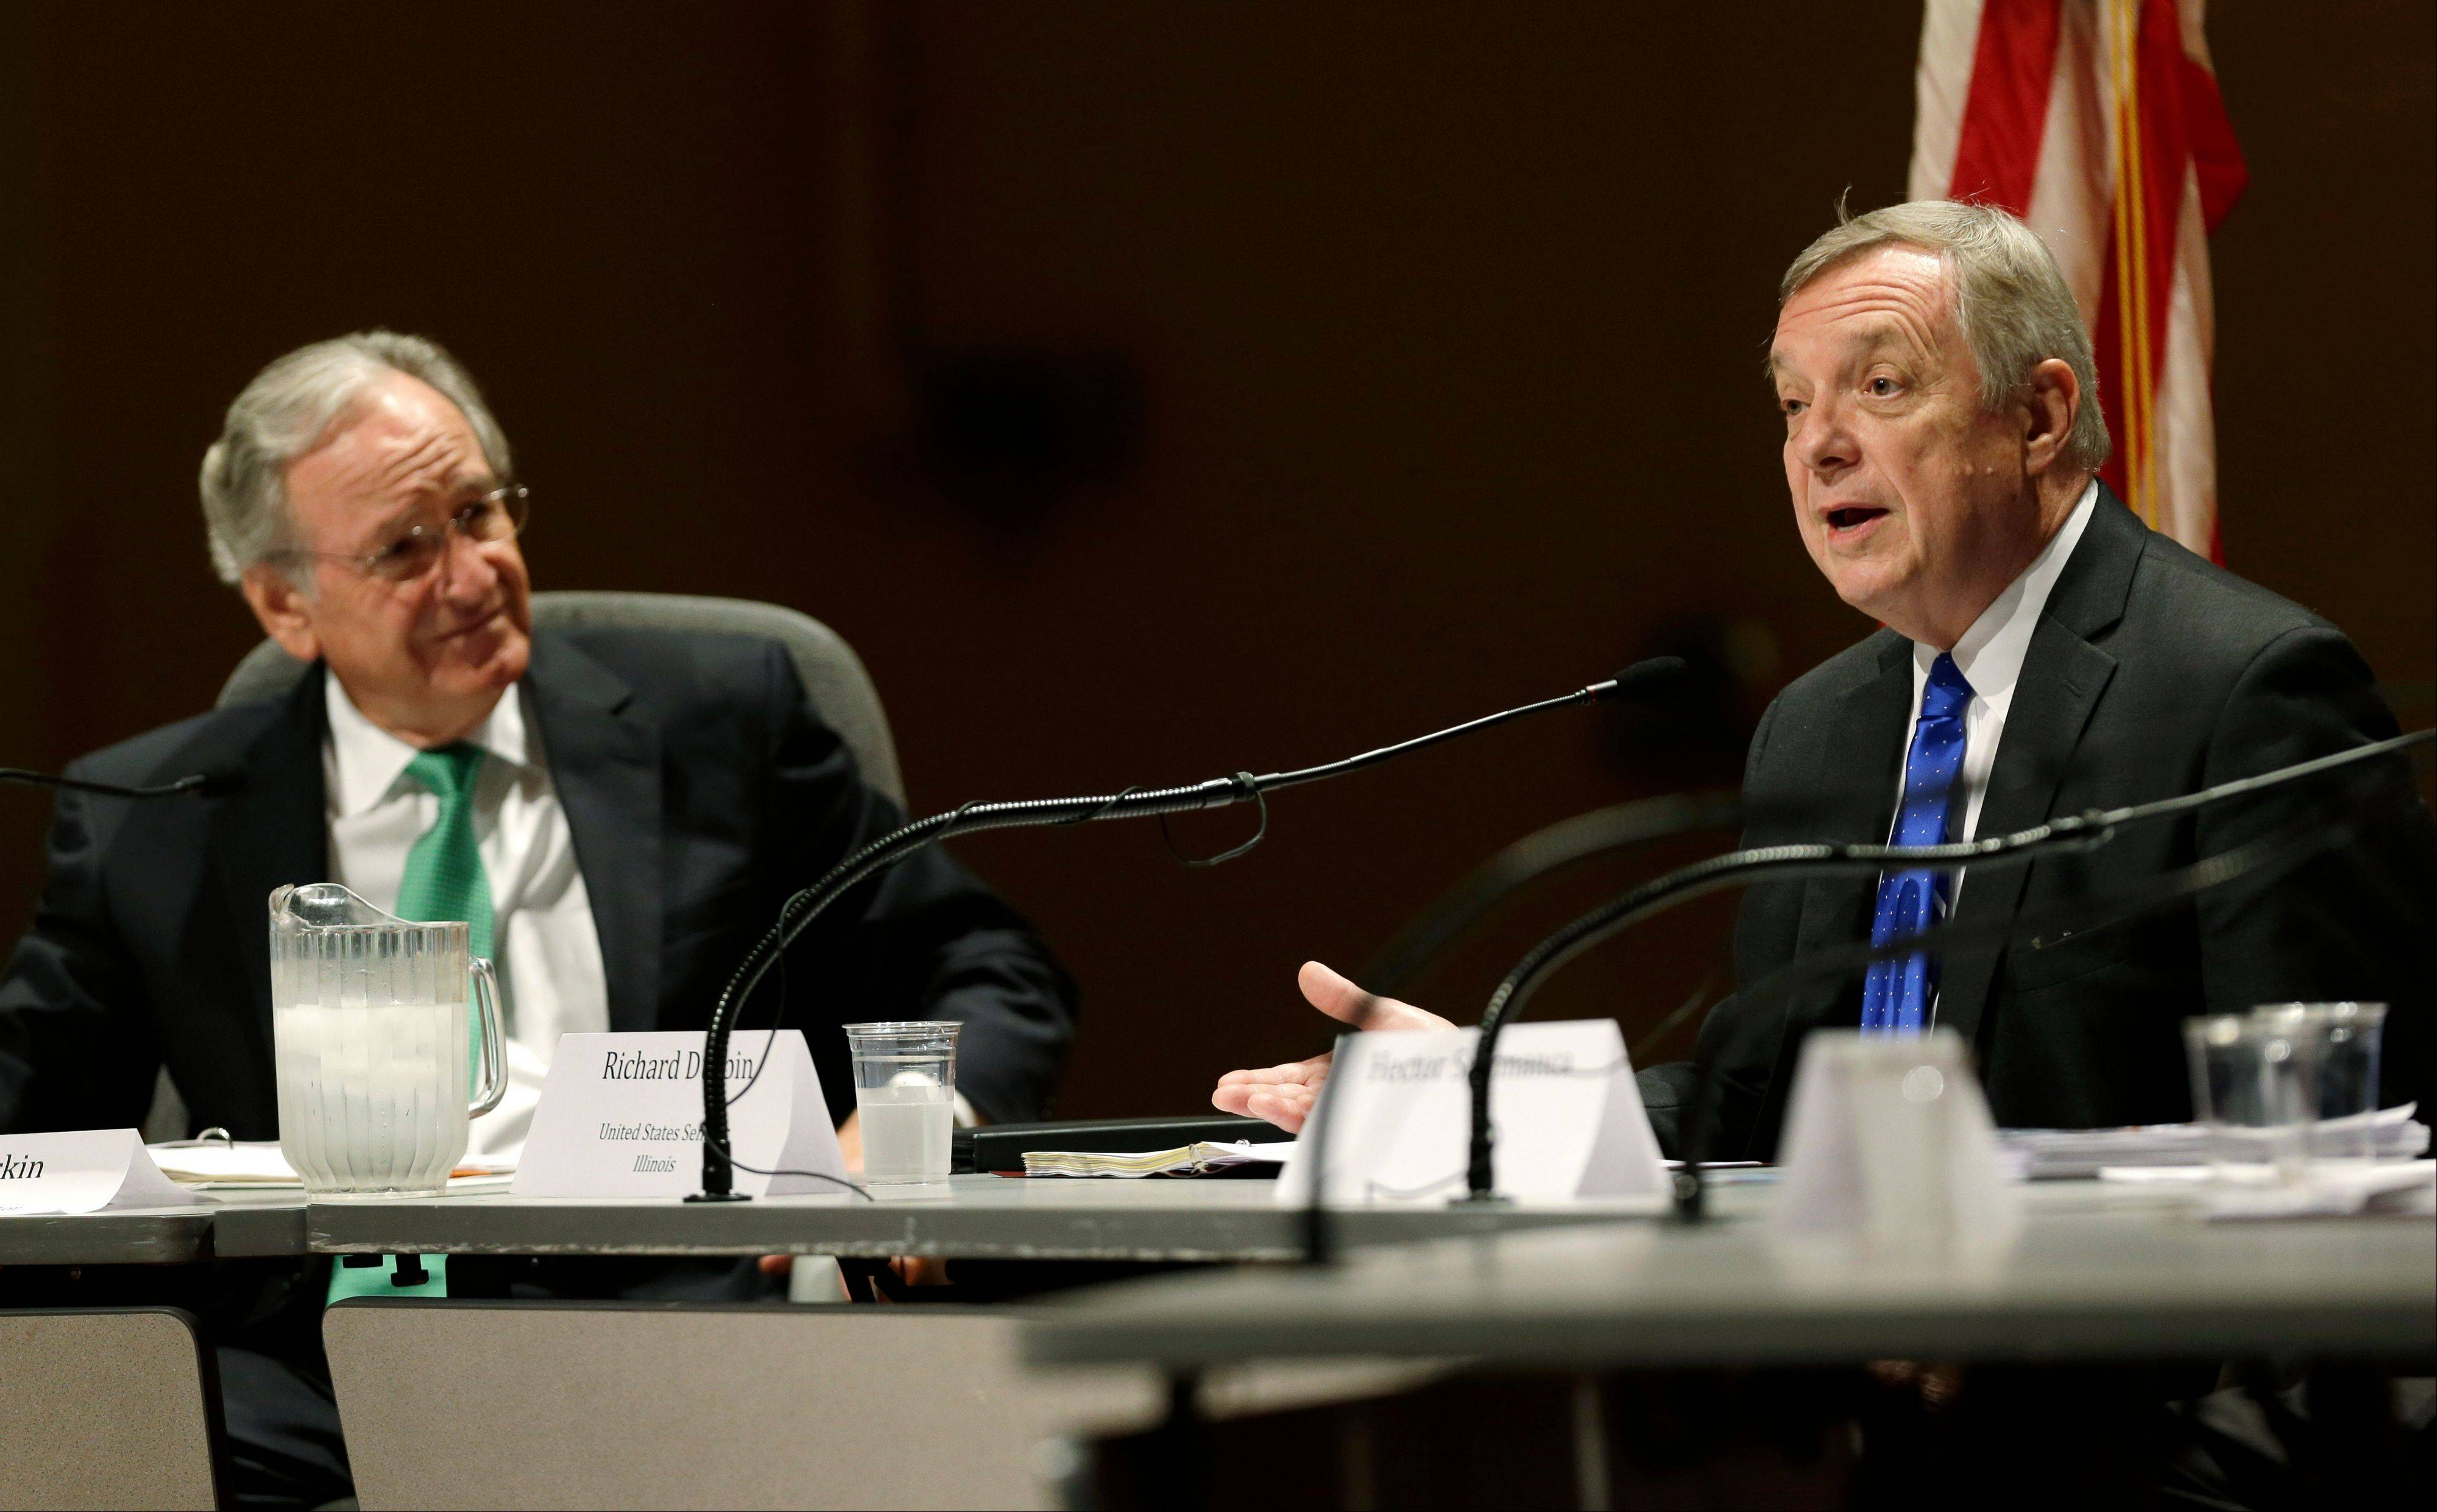 U.S. Sen. Dick Durbin, right, speaks Friday during a forum on immigration. Durbin, of Illinois, the No. 2 Democrat in the Senate, tucked a provision into the 2014 fiscal year defense spending bill that would require the NSA to report to Congress -- within 90 days after the legislation becomes law -- on the precise number of phone records collected.